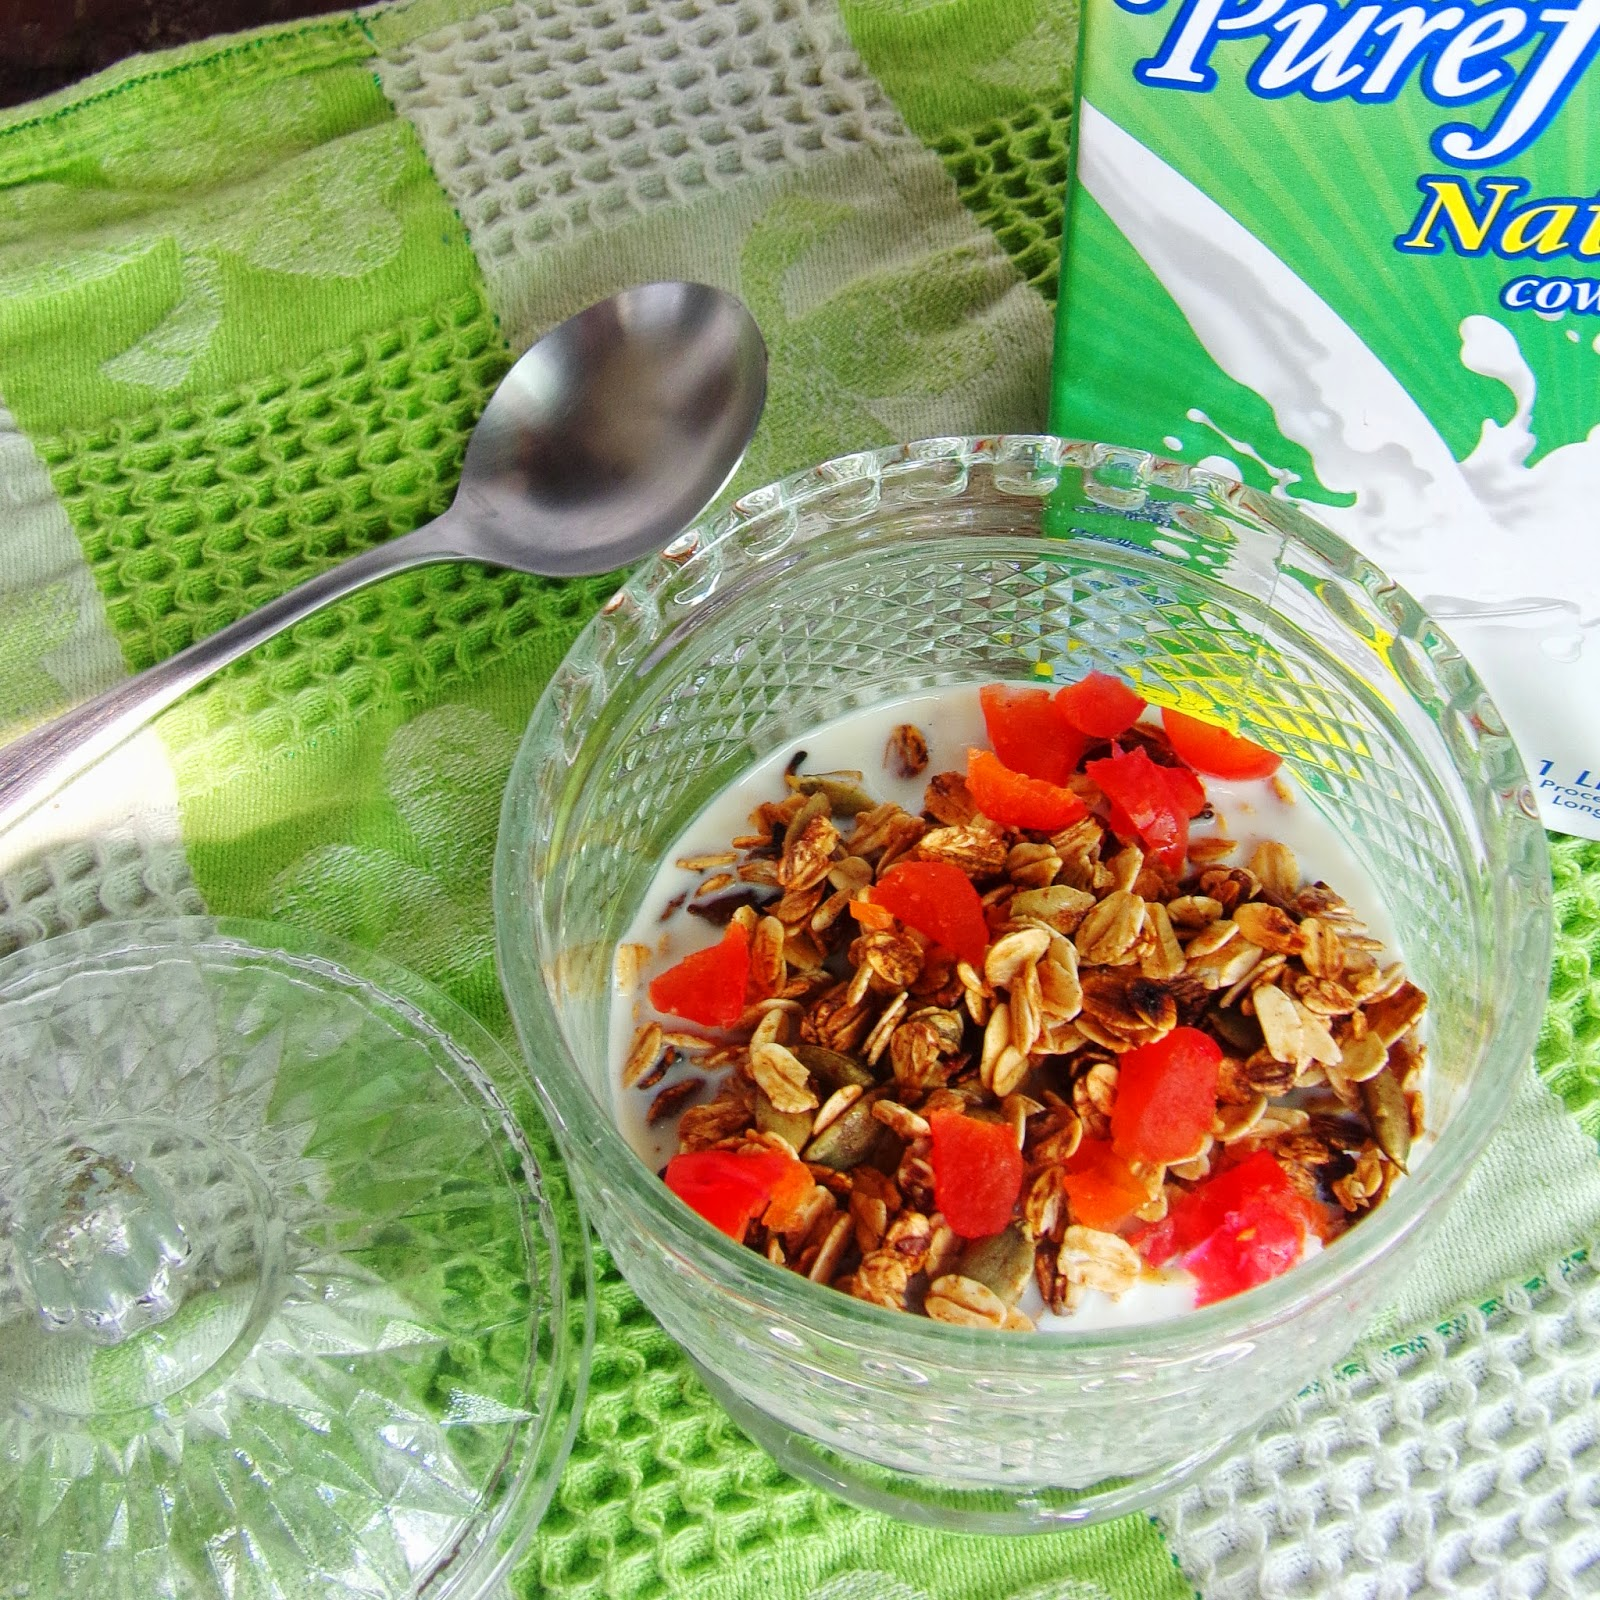 recipe for granola, low fat granola recipe, home made granola, granola recipe honey, healthy breakfast meals, quick healthy meals